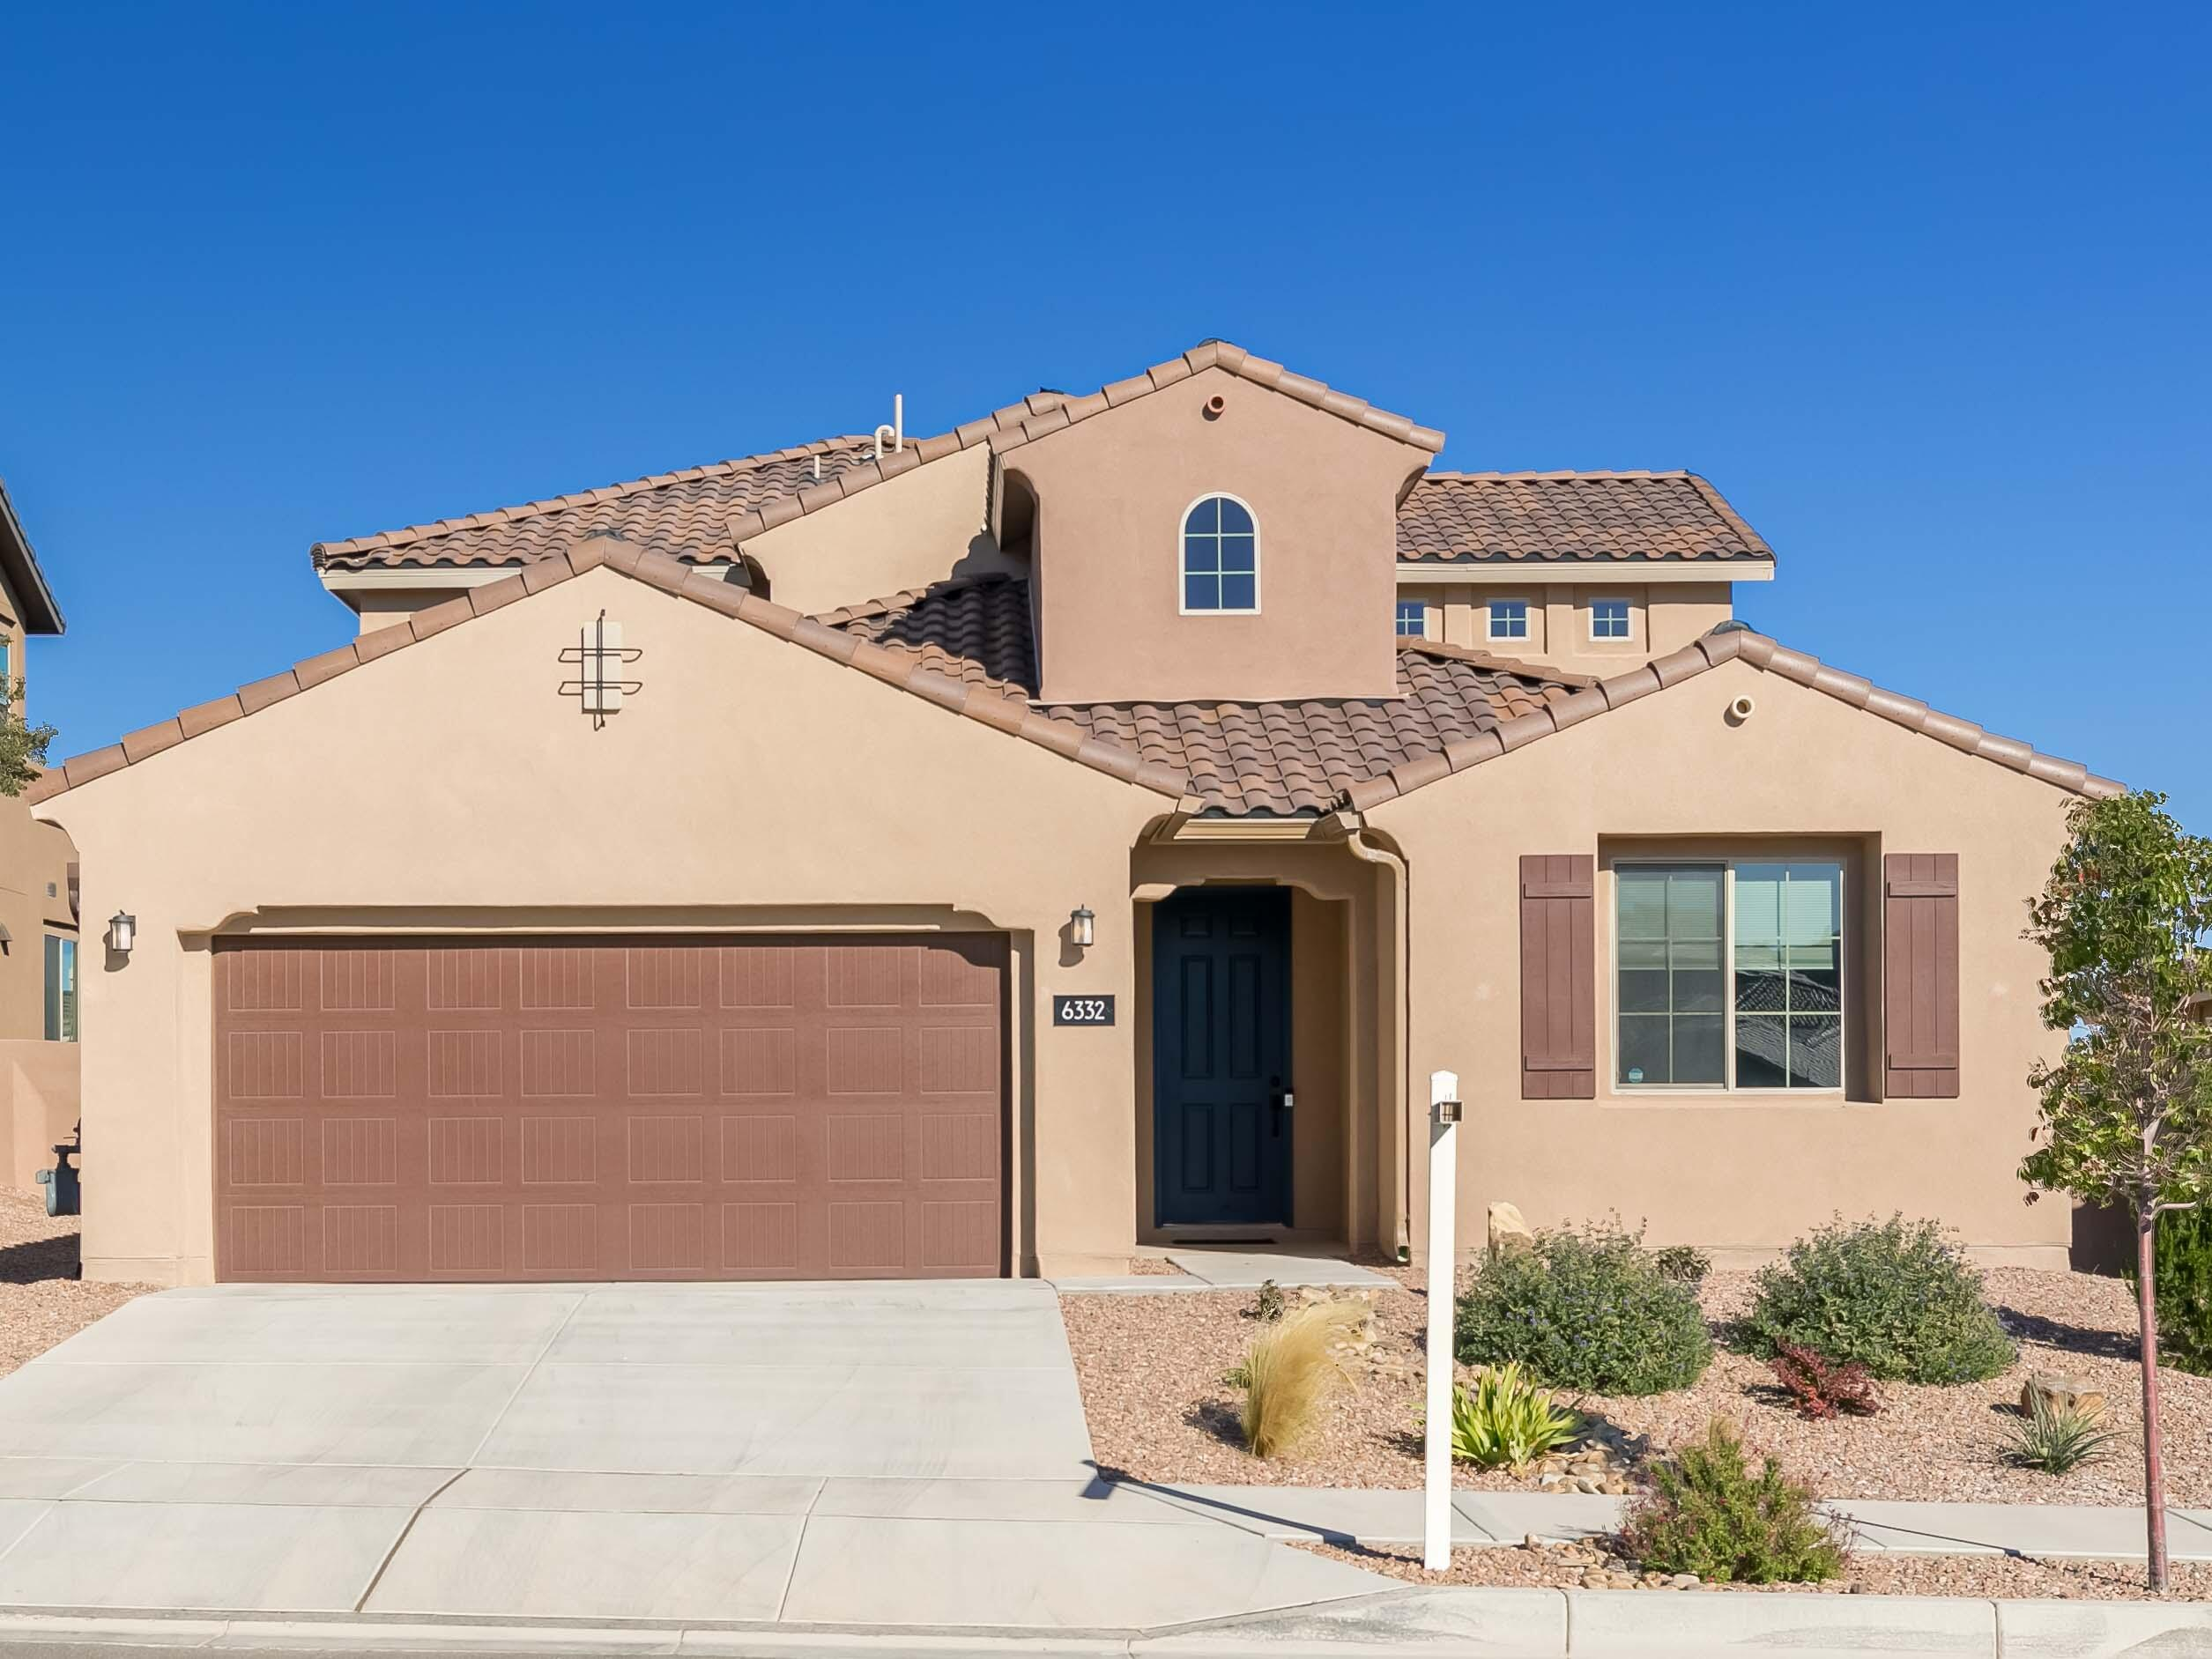 This beautiful like new home, open floorplan has been very well cared for over the last 2 years. It is the Carissa model by Pulte Homes in a gated community with two masters, one up and the other down. 360 degree views from the upper balcony. The kitchen has a large island, granite counters, high-grade kitchen cabinets and decorative tile backsplash, stainless steel appliances. Build Green New Mexico for exceptional energy efficiency and comfort with refrigerated air, Lennox furnaces and a tank-less hot water heater for extra savings. Situated next door to the Community Center that has indoor and outdoor pools, a large gym, yoga room, cafe and a large park. This home and fully planned community offer a desirable quality of life for its residents. Come see the peacefulness for yourself.